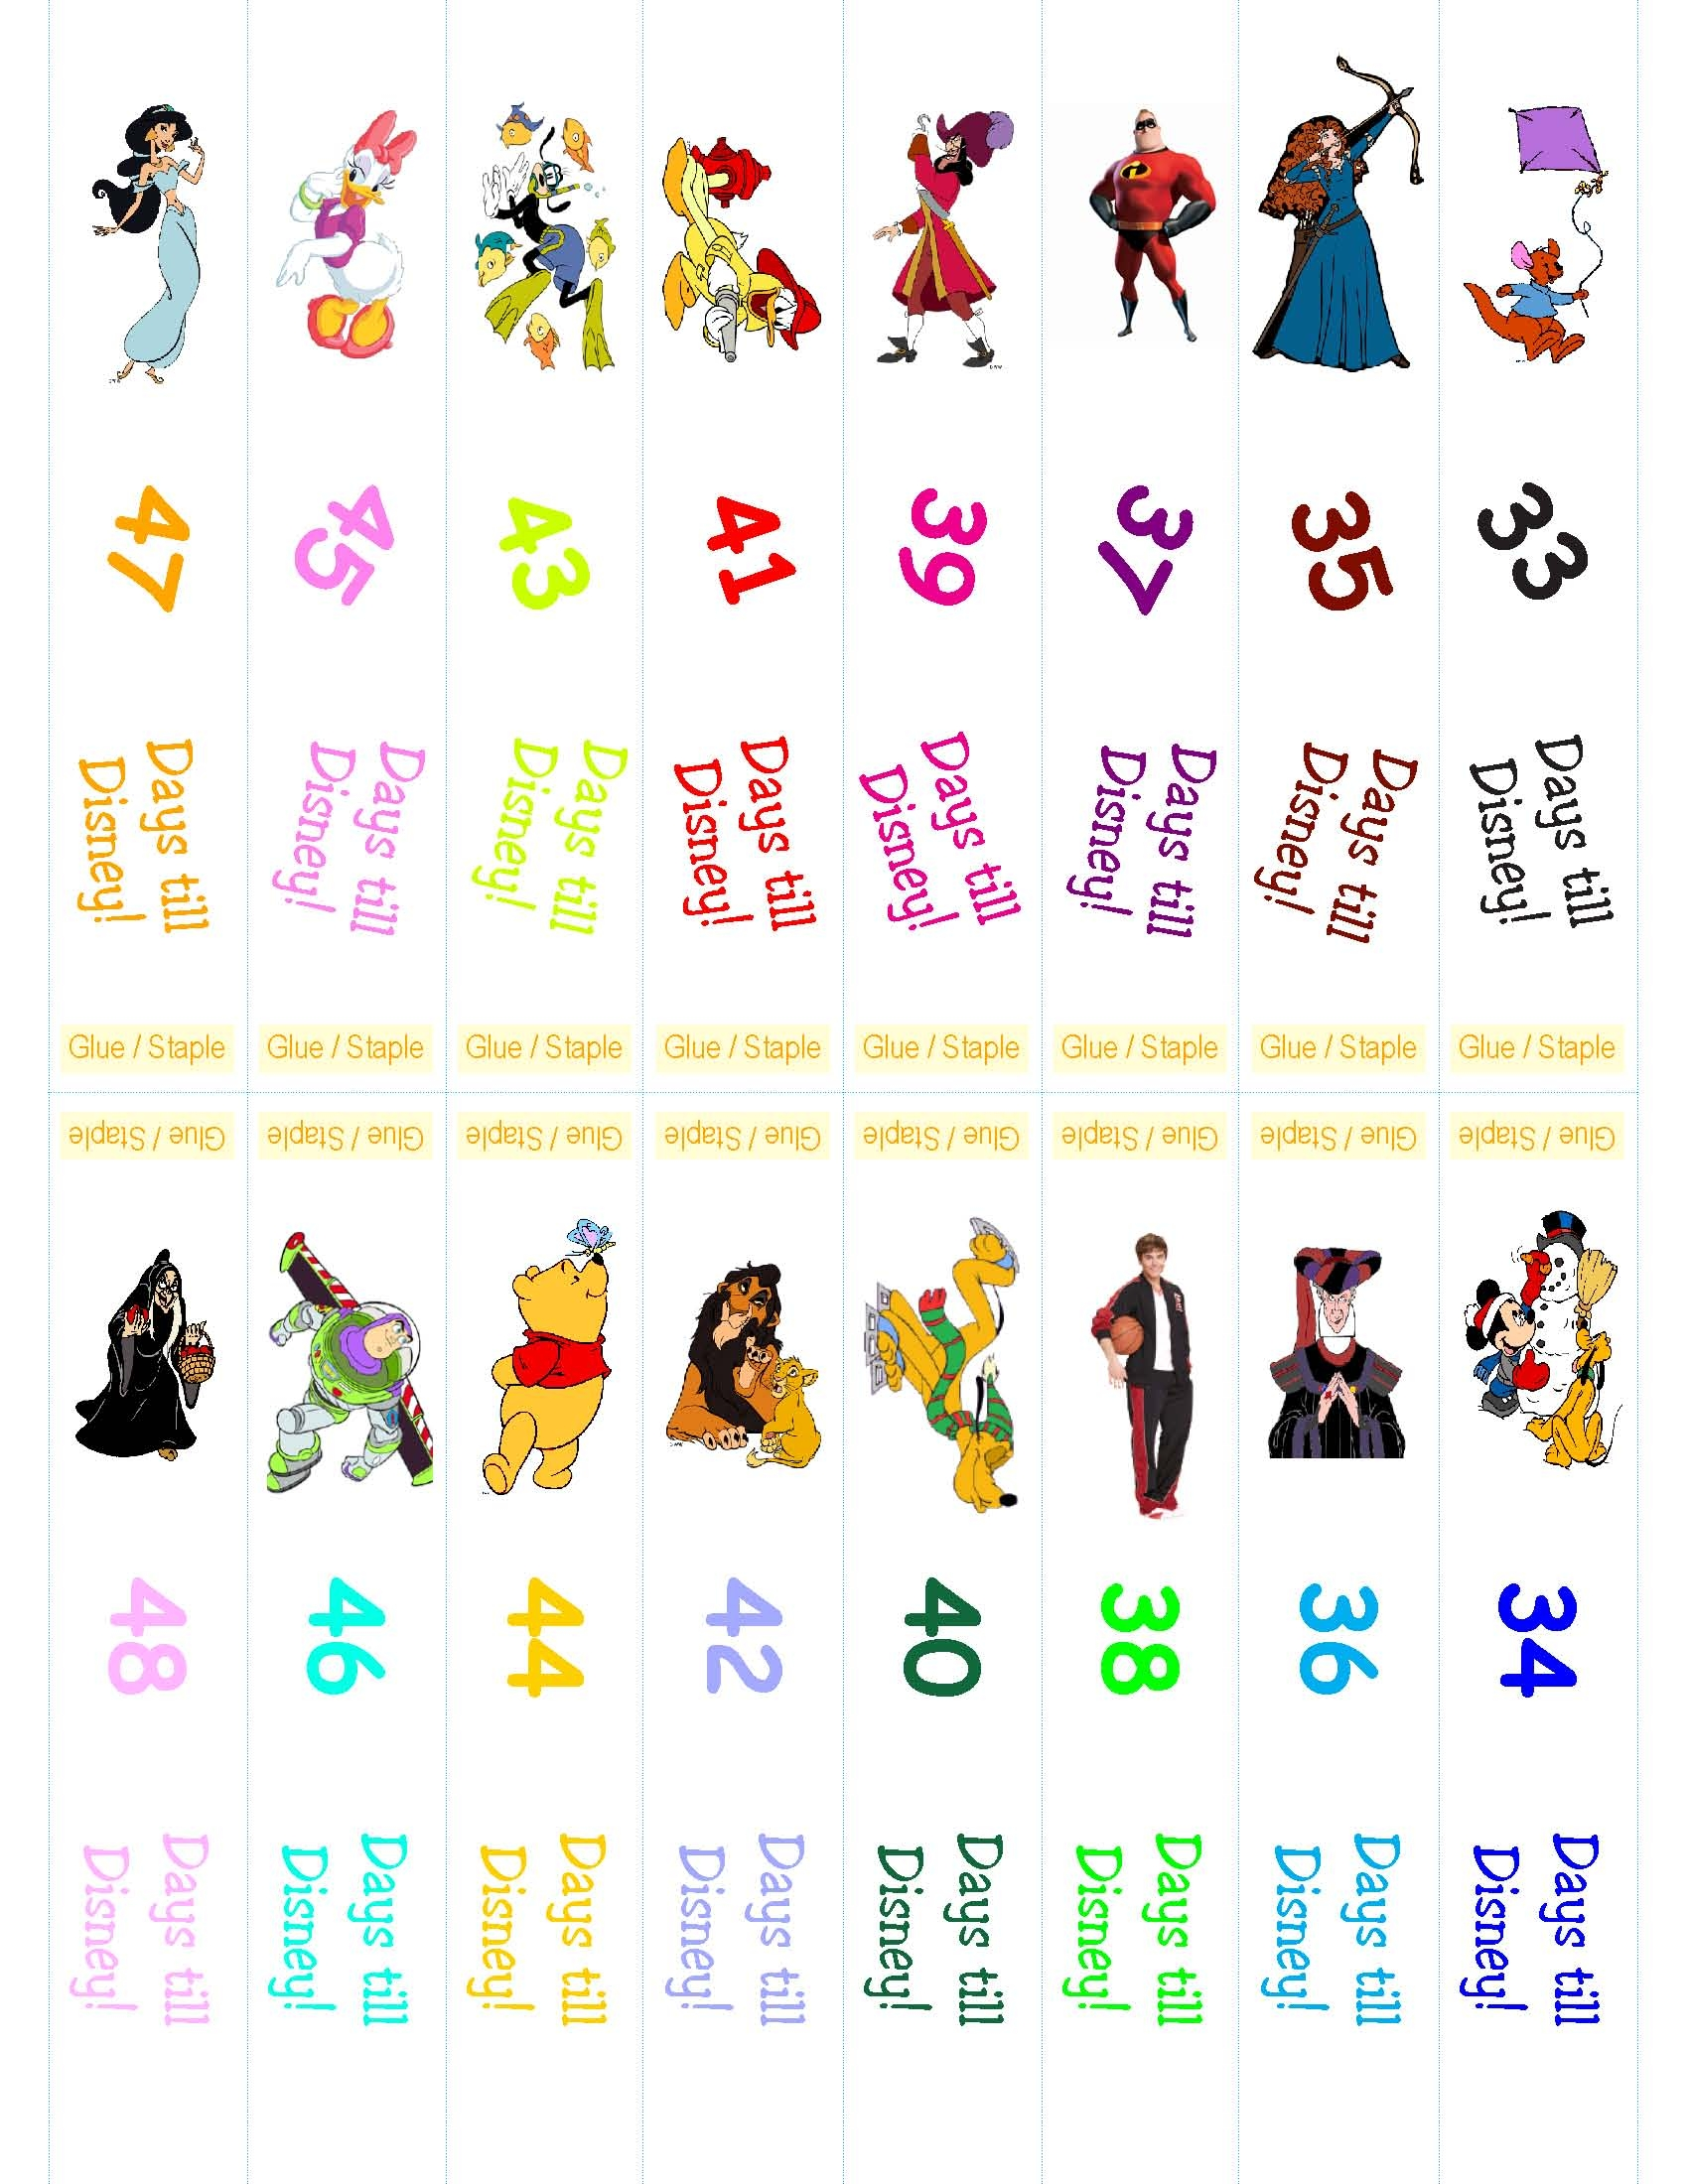 image about Disney Countdown Printable referred to as Disney Countdown Ring